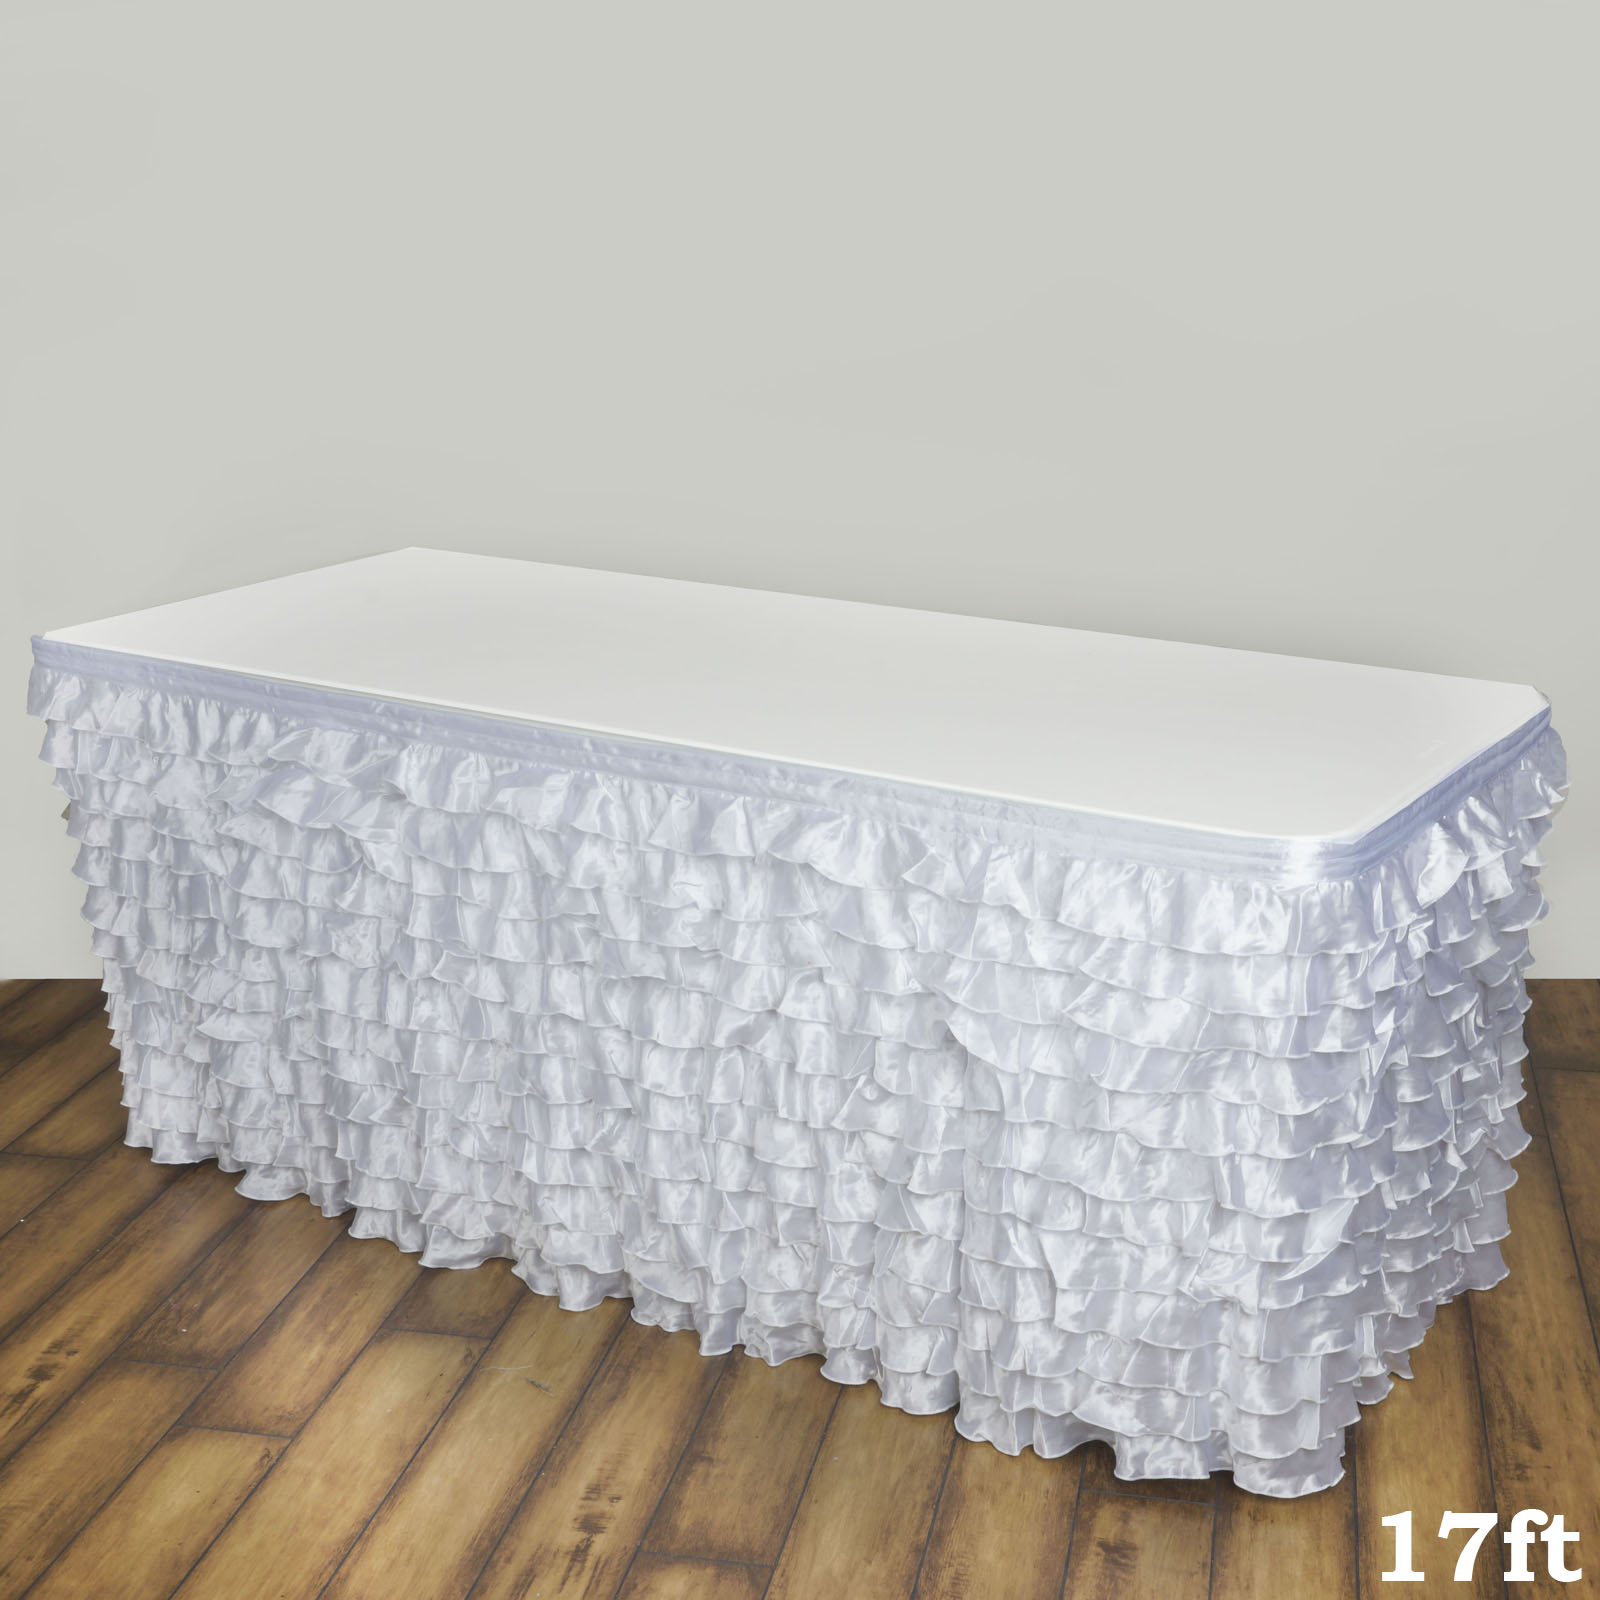 BalsaCircle White Satin Ruffled Banquet Table Skirt - Wedding Party Trade Show Booth Events Linens Decorations